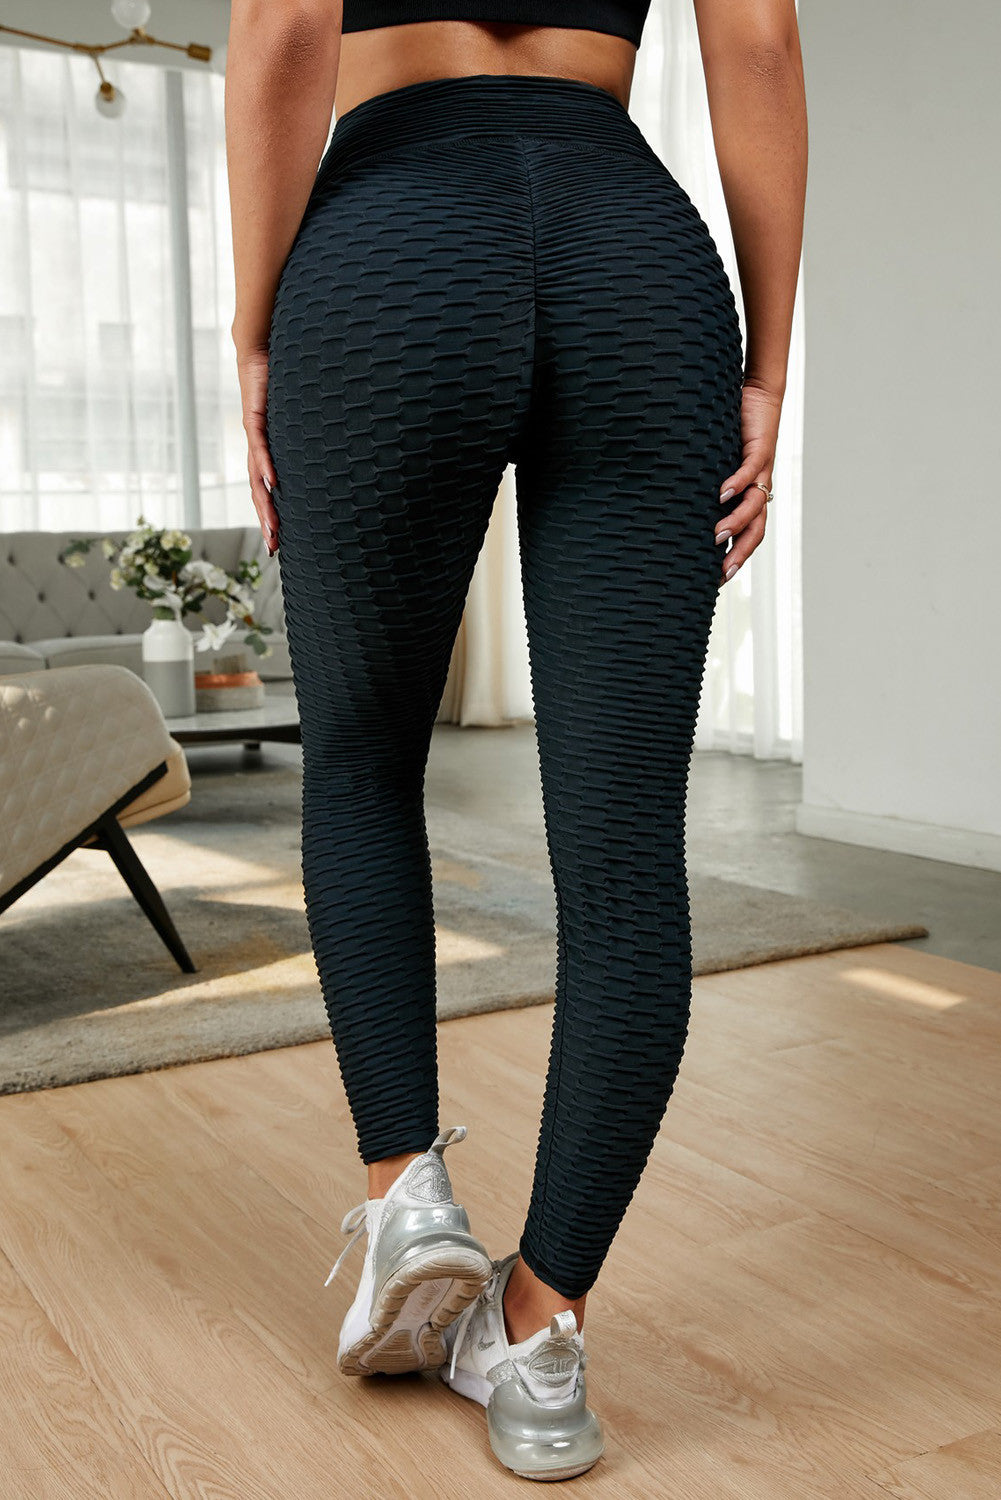 Double Vision Perfect Shape Leggings